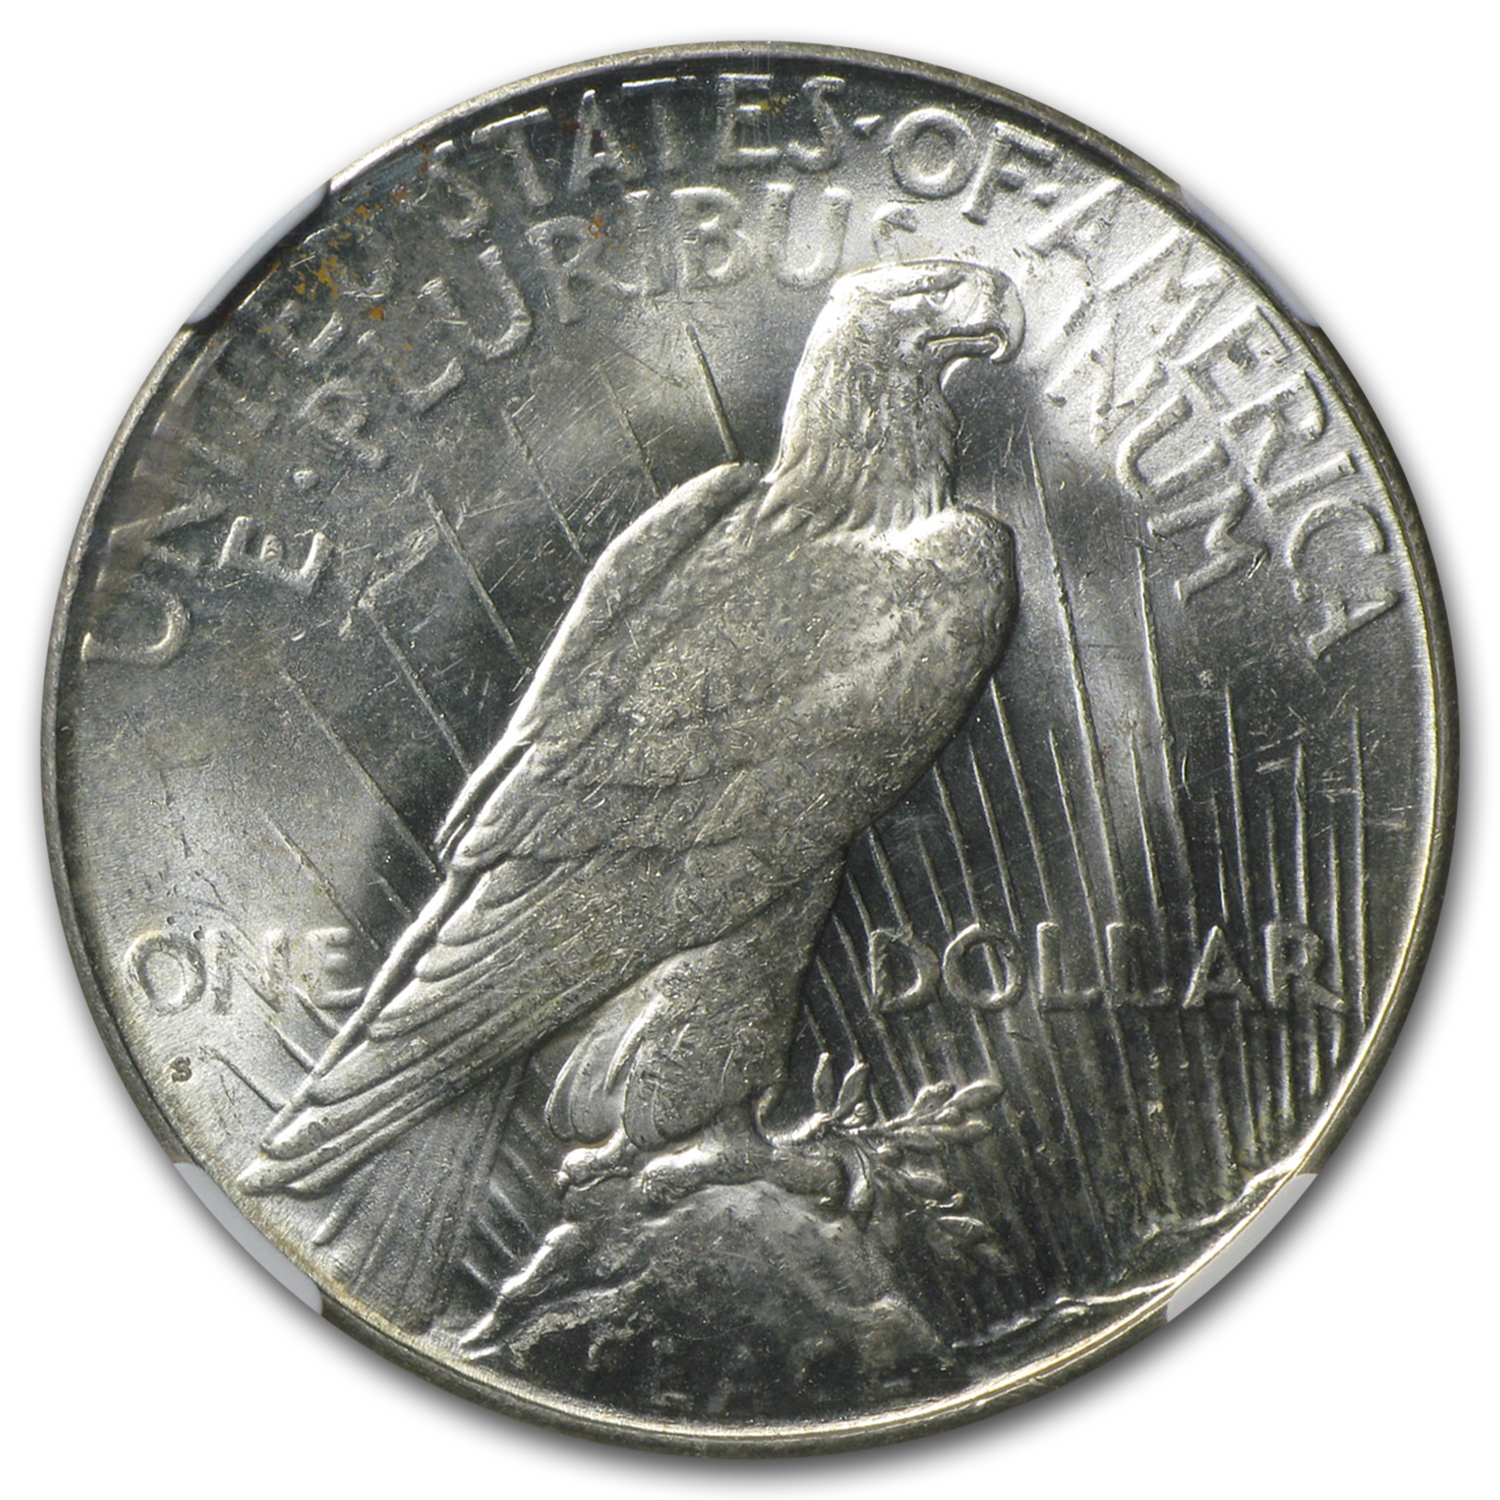 1928-S Peace Dollar - Brilliant Uncirculated